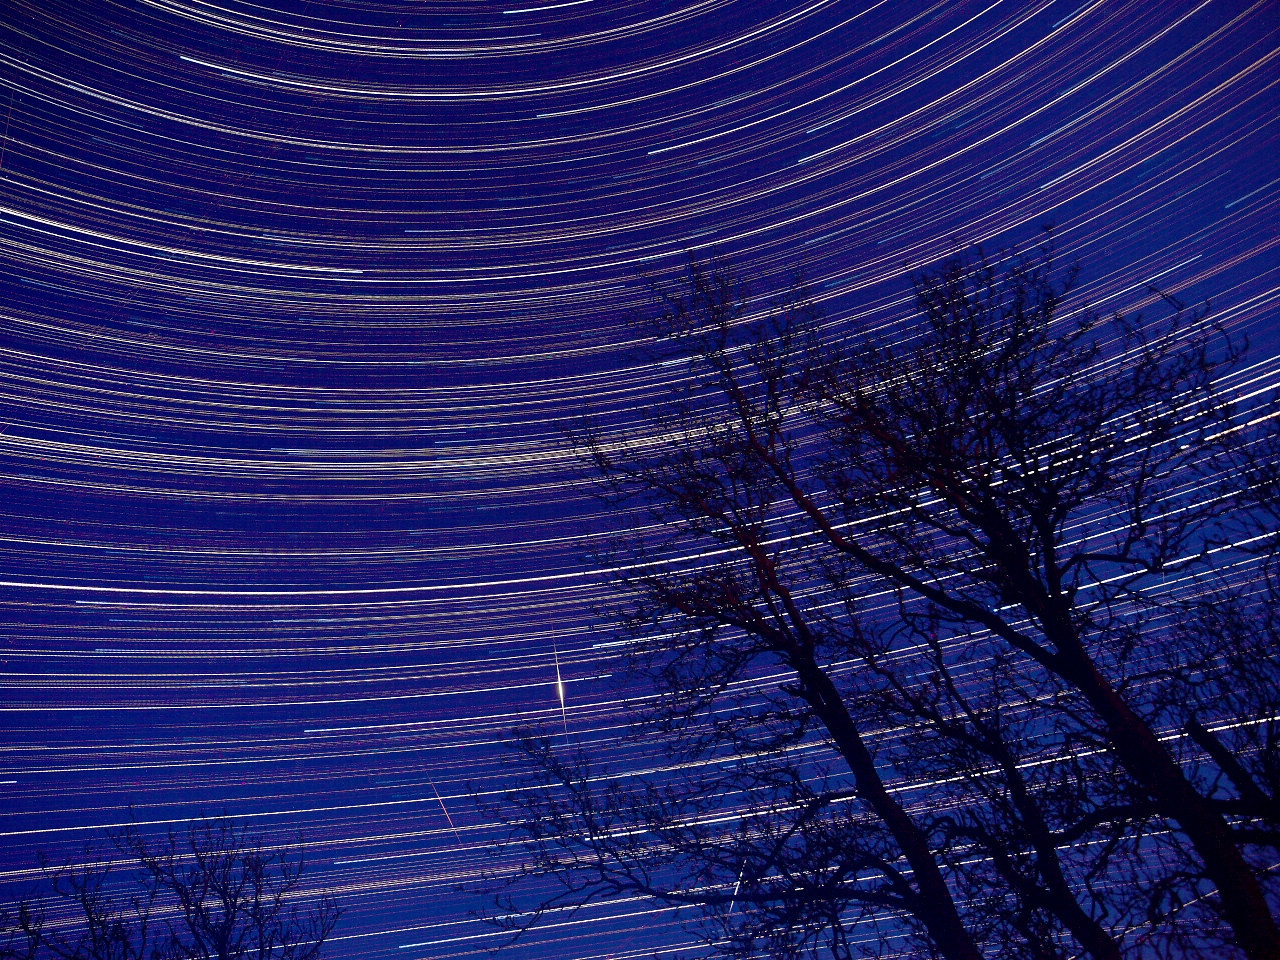 May 09 2010. Startrail from a south/south east facing night sky. Bonus of 3 meteors from the Aquariids shower. Captured with Olympus E3, 12-60mm SWD lens. 15s exposures from 2200hrs on 9th through 0600hrs on 10th. Images stacked to produce the startrail.